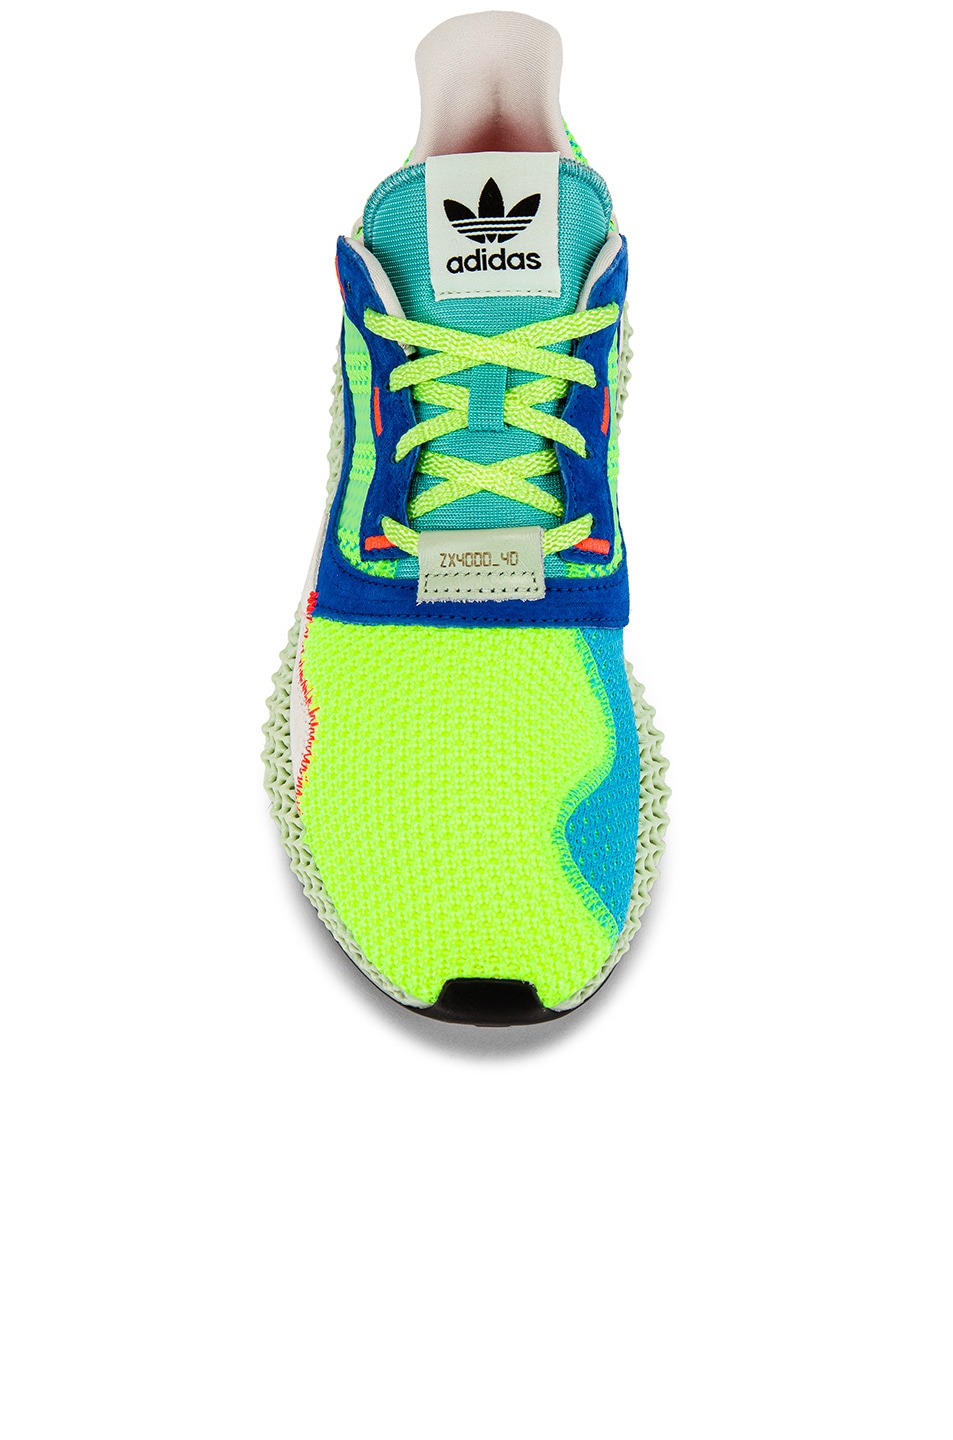 Image 4 of adidas Originals ZX4000 4D Sneaker in